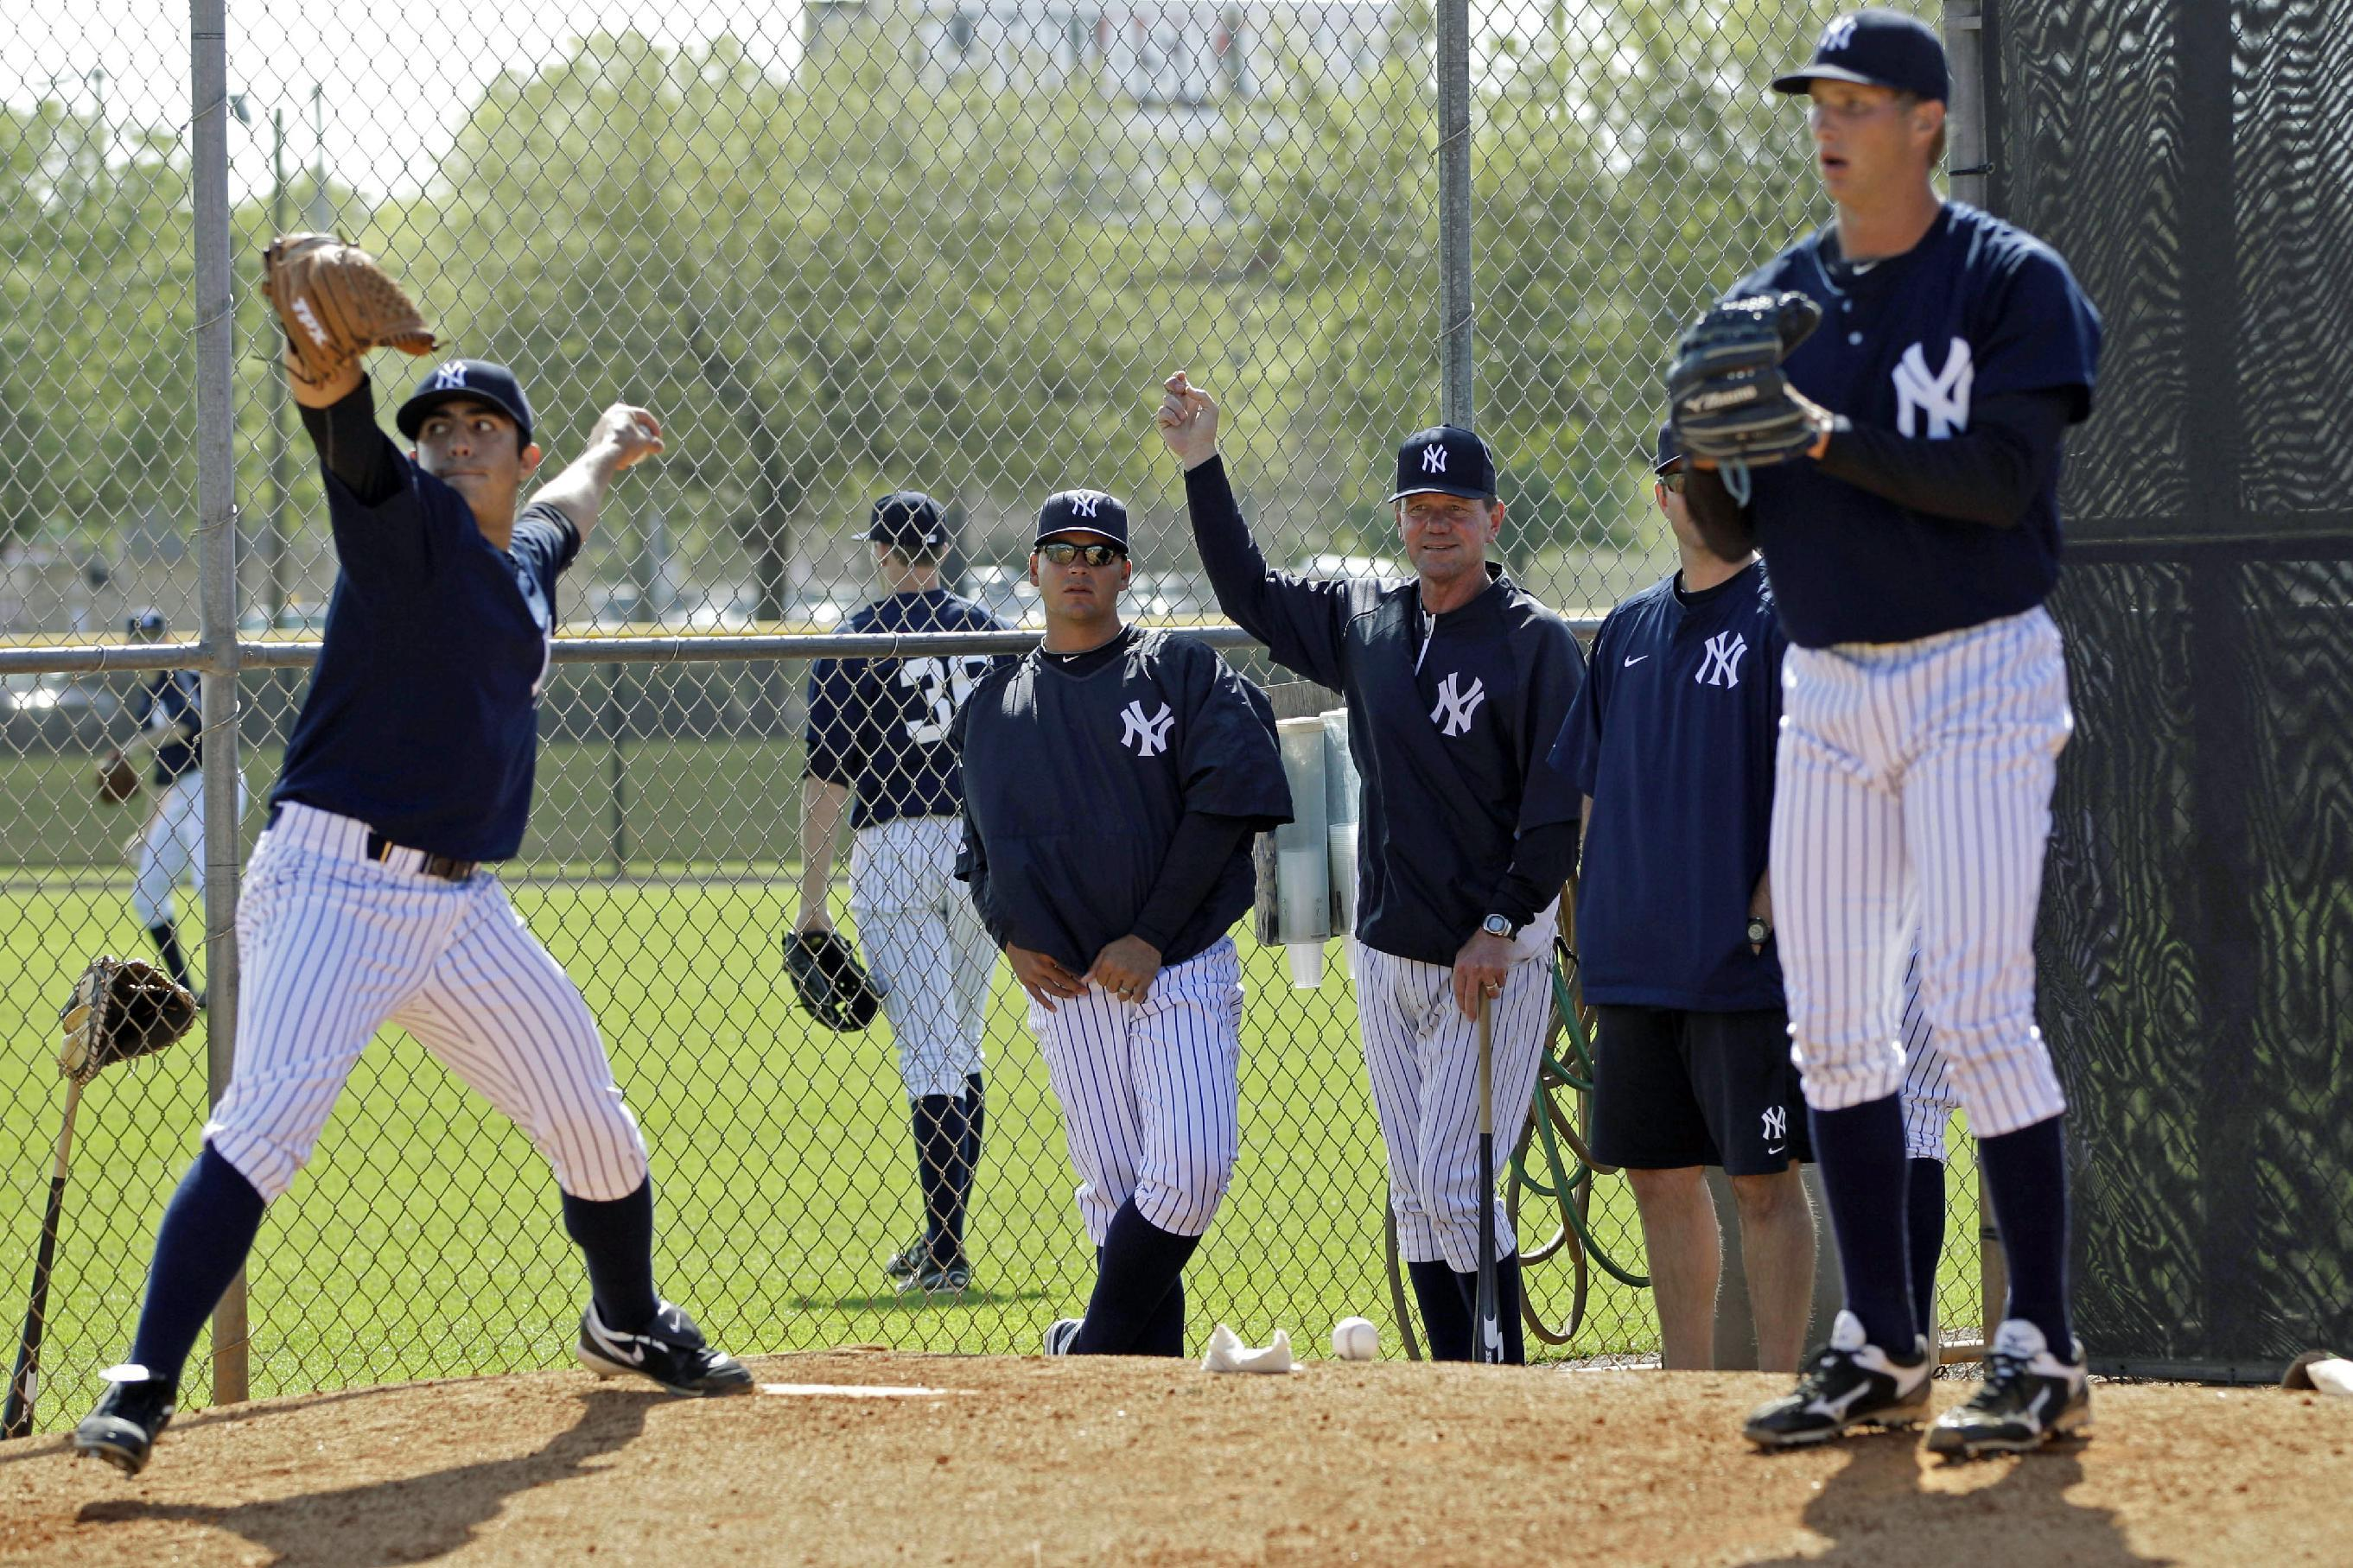 In this Wednesday, March 7, 2012, photo, Scranton/Wilkes-Barre Yankees manager Dave Miley, third from left, watches pitchers throw in the bullpen at the Yankees' minor league training complex in Tampa, Fla. Miley's team will play 144 games of their Triple-A season on the road this year, forced out of PNC Field because of a $40 million stadium renovation. (AP Photo/Kathy Willens)